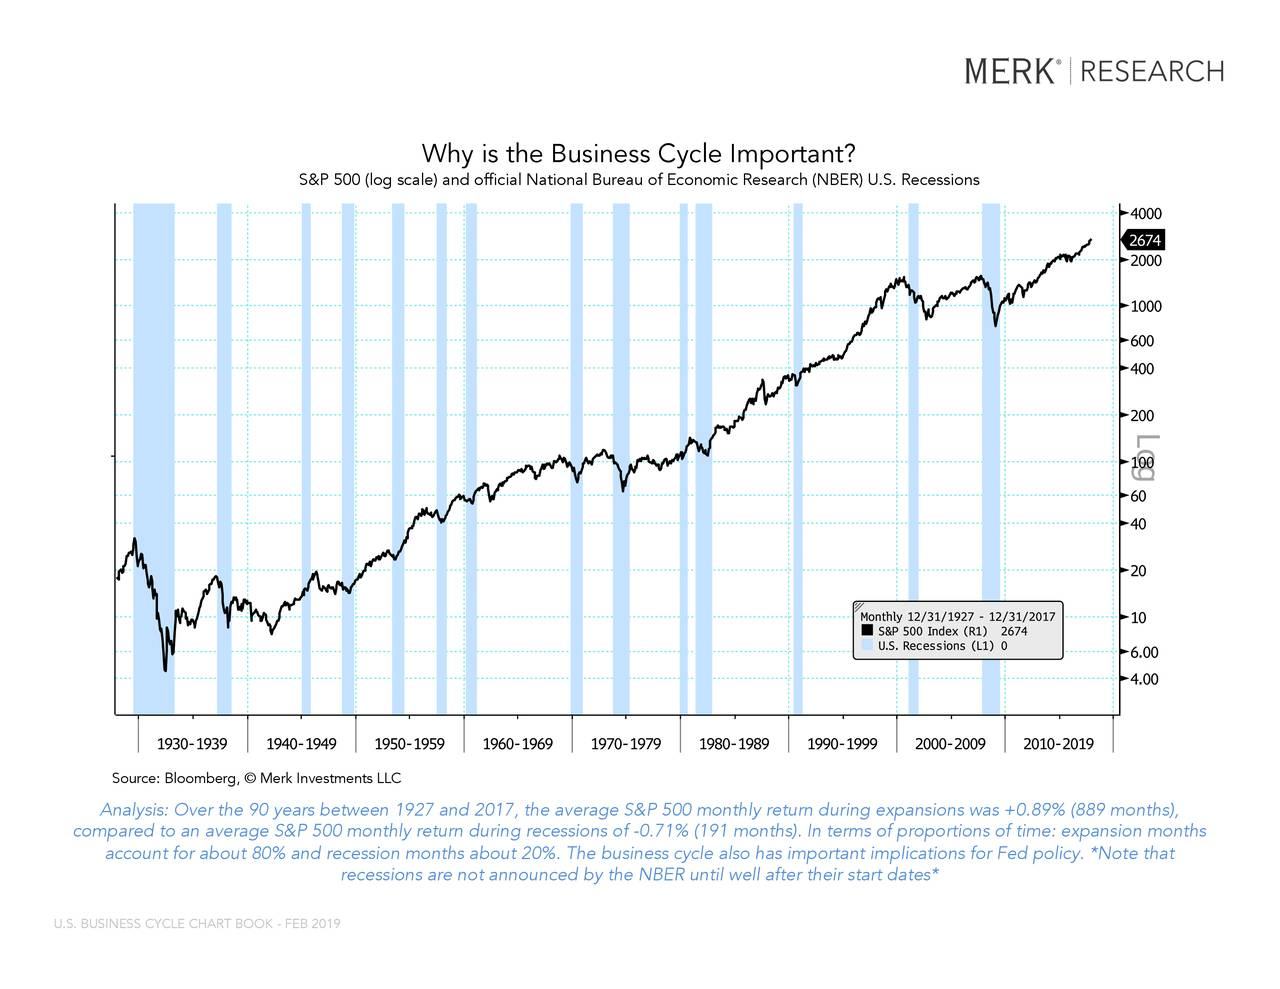 """SPX Index (S&P 500 Index) SRINDEX Index (U.S. Recession Indicator... Why is the Business Cycle Important? S&P 500 (log scale) and official National Bureau of Economic Research (NBER) U.S. Recessions This rSource: Bloomberg,© Merk InvestmentsLLC any way. The BLOOMBERG PROFESSIONAL service and BLOOMBERG Data are owned and distributed locally by Bloomberg Finance LP (""""BFLP"""") and its subsidiaries in all jurisdictions other than Argentina, Bermuda, China, India, Japan and Korea (the (""""BFLP Countries""""). BFLP is a wholly-owned subsidiary of Bloomberg LP (""""BLP""""). BLP provides BFLP with all the global marketing and operational support and service for the Services and distributes the Services either directly or through a non-BFLP subsidiary in the BLP Countries. BFLP, BLP and their affiliates do not provide investment advice, and nothing herein shall constitute an offer of financial instruments by BFLP, BLP or their affiliates. Analysis: Over the 90 years between 1927 and 2017, the average S&P 500 monthly return during expansions was +0.89% (889 months), coBloomberg ® 02/01/2019 18:54:18turn during recessions of -0.71% (191 months). In terms of proportions of time: expansi on months 1 account for about 80% and recession months about 20%. The business cycle also has important implications for Fed policy. *Not e that recessions are not announced by the NBER until well after their start dates* U.S. BUSINESS CYCLE CHART BOOK - FEB 2019"""